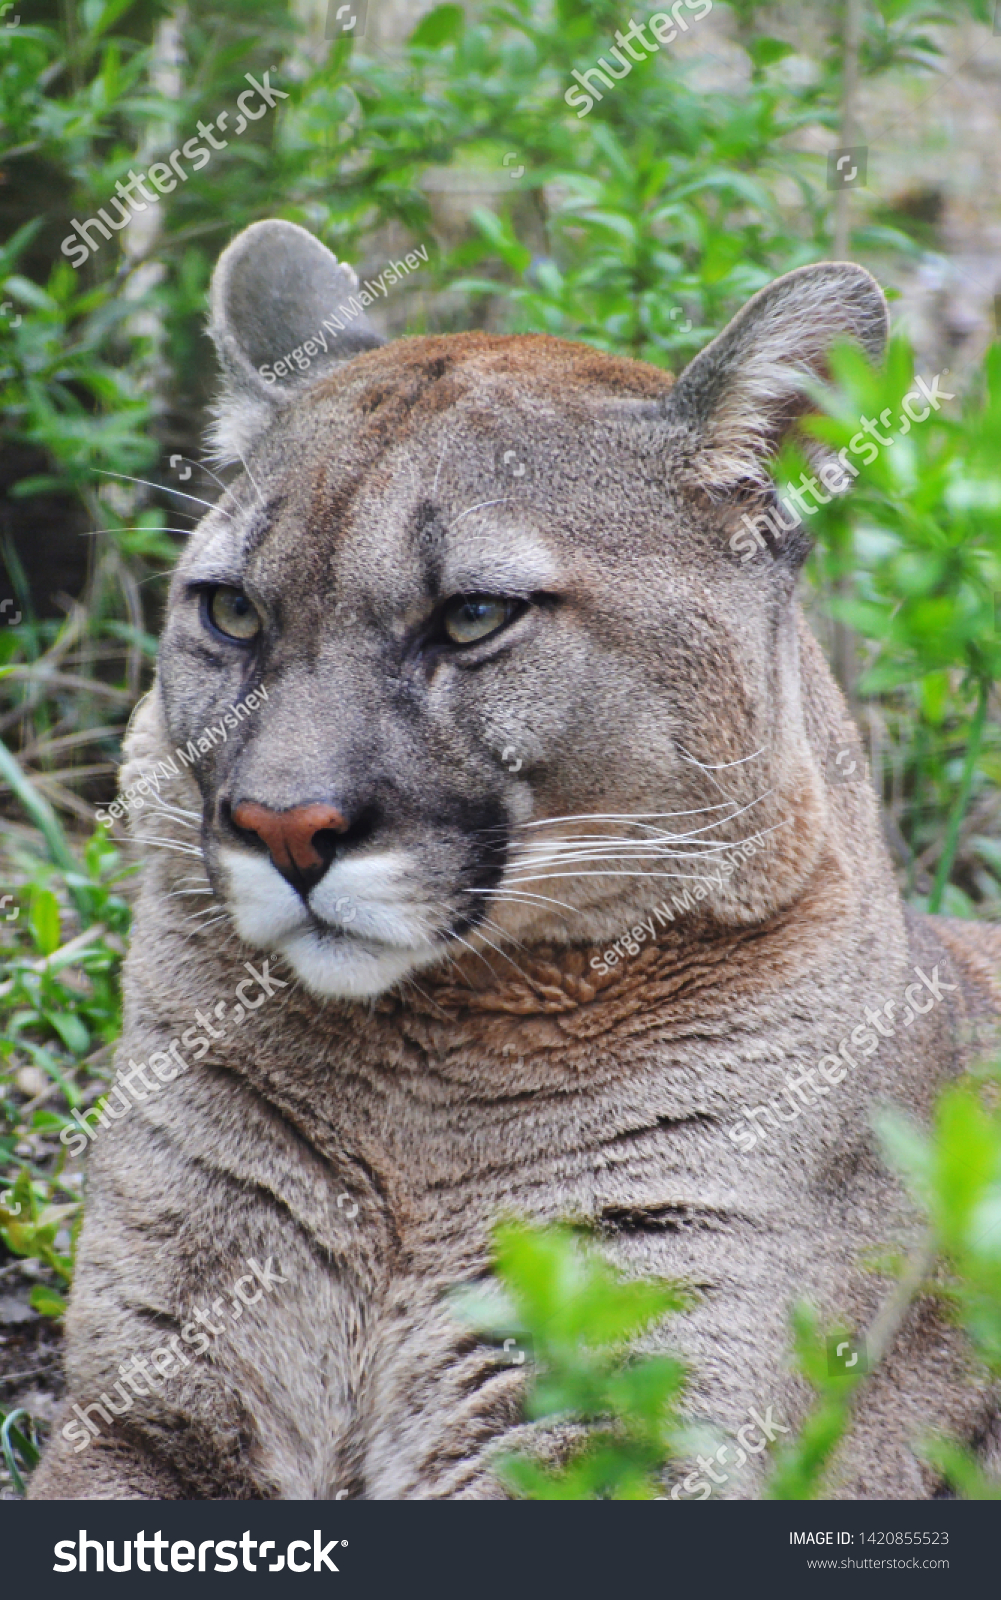 American big cat - Puma, with looks good and fluffy but not in America a more dangerous predator and bloodthirsty #1420855523